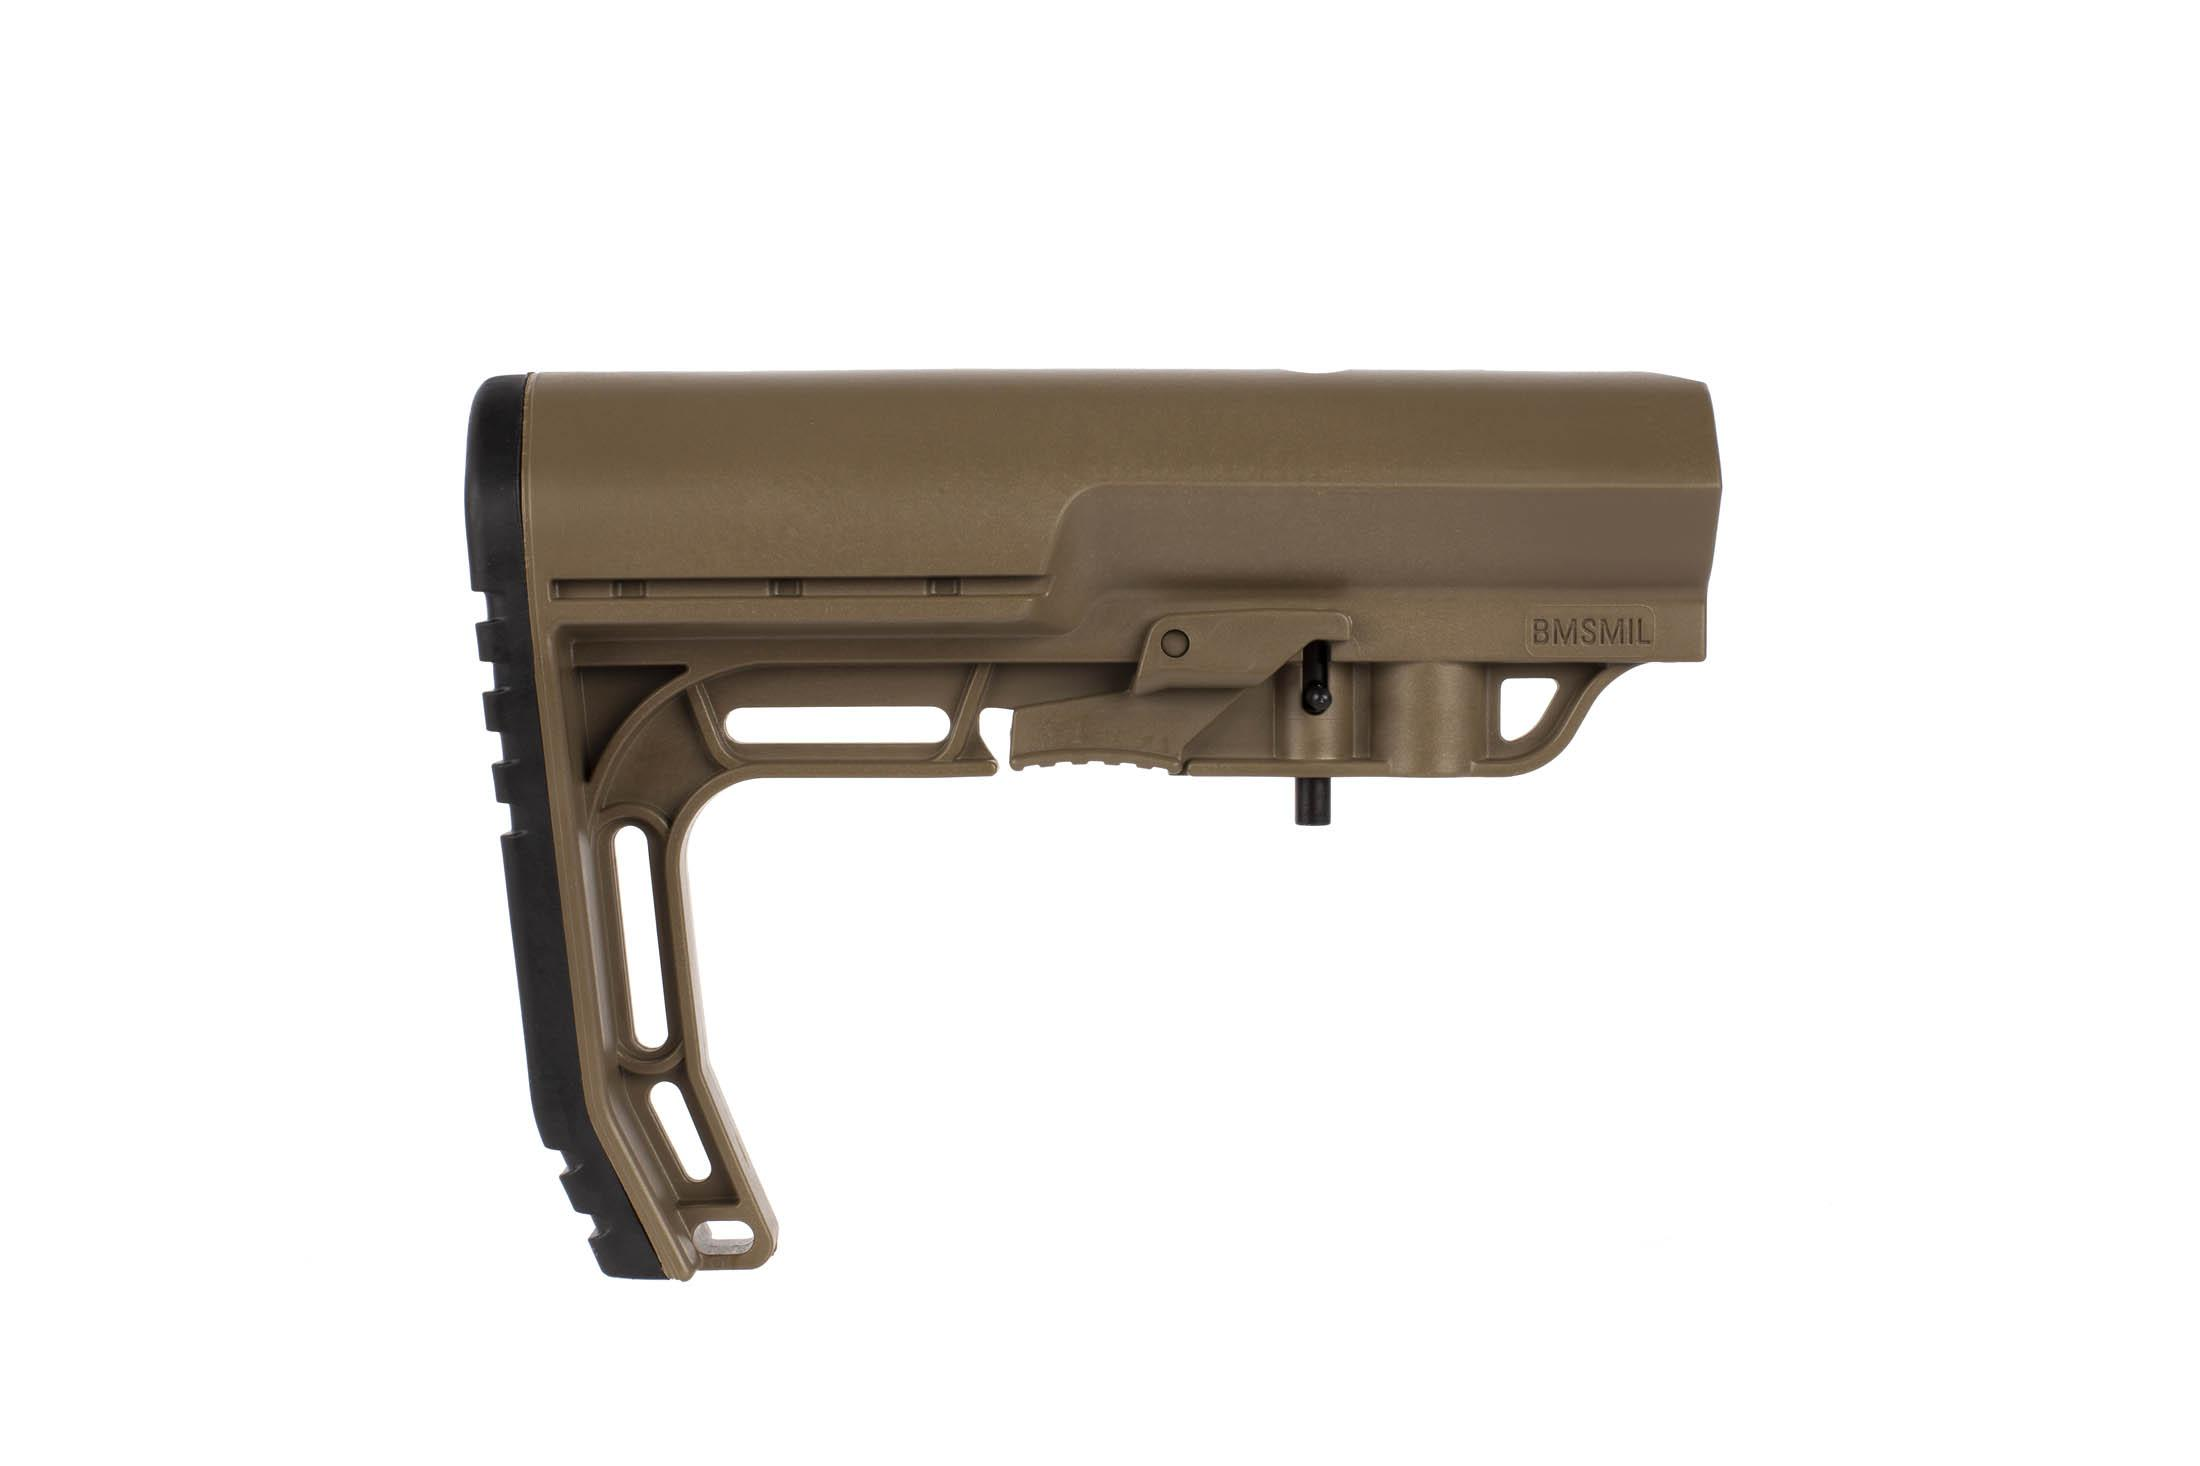 This Mission First Tactical BATTLELINK Minimalist Stock fits MIL-SPEC reciver extentions